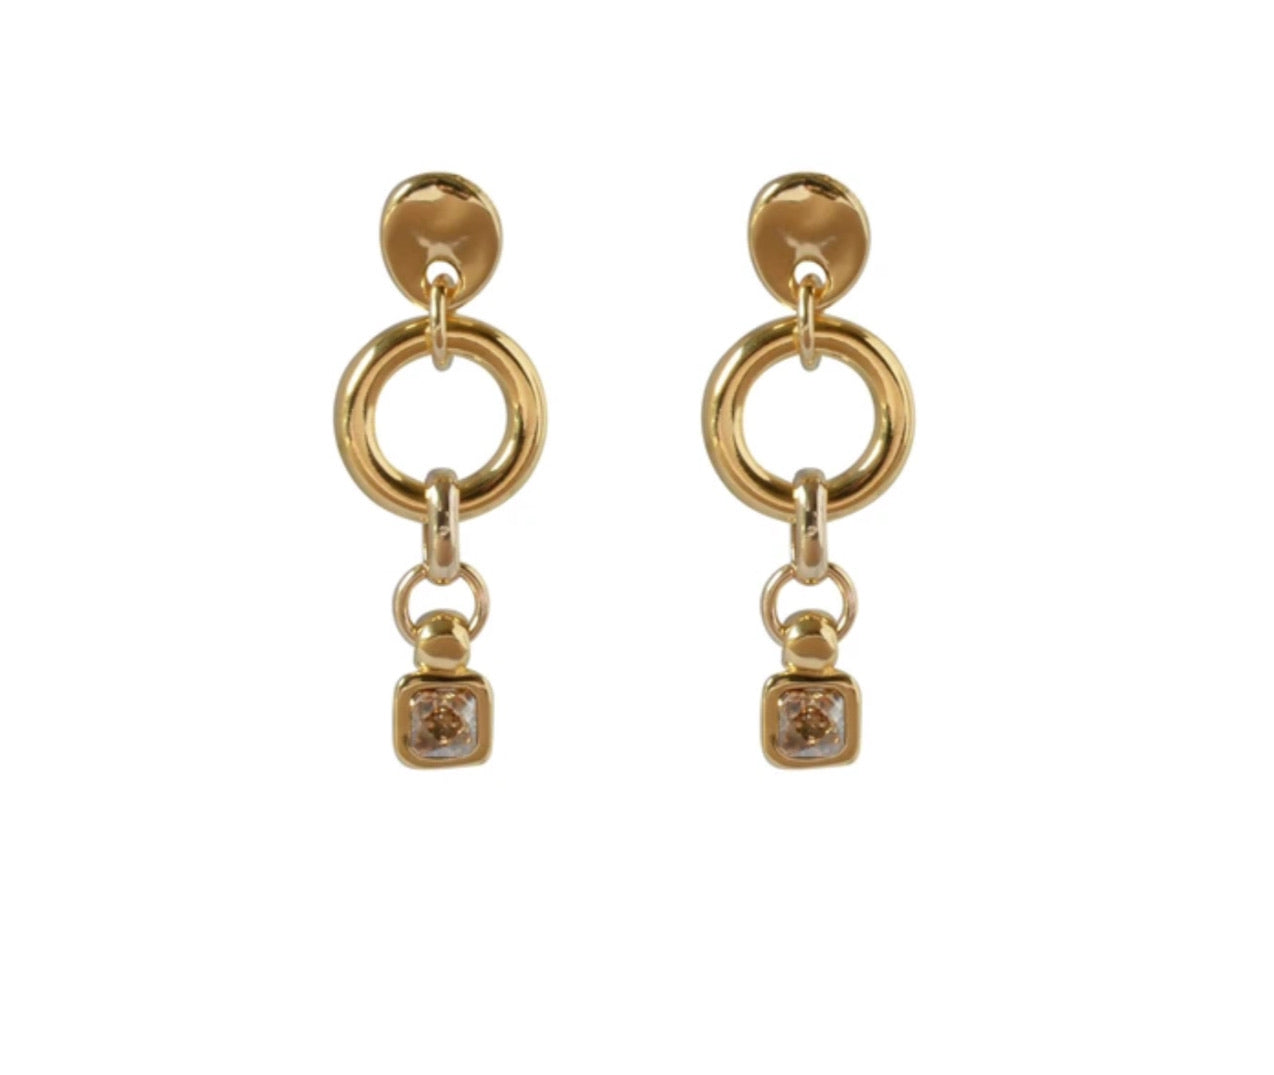 Vidda Ivy Earrings